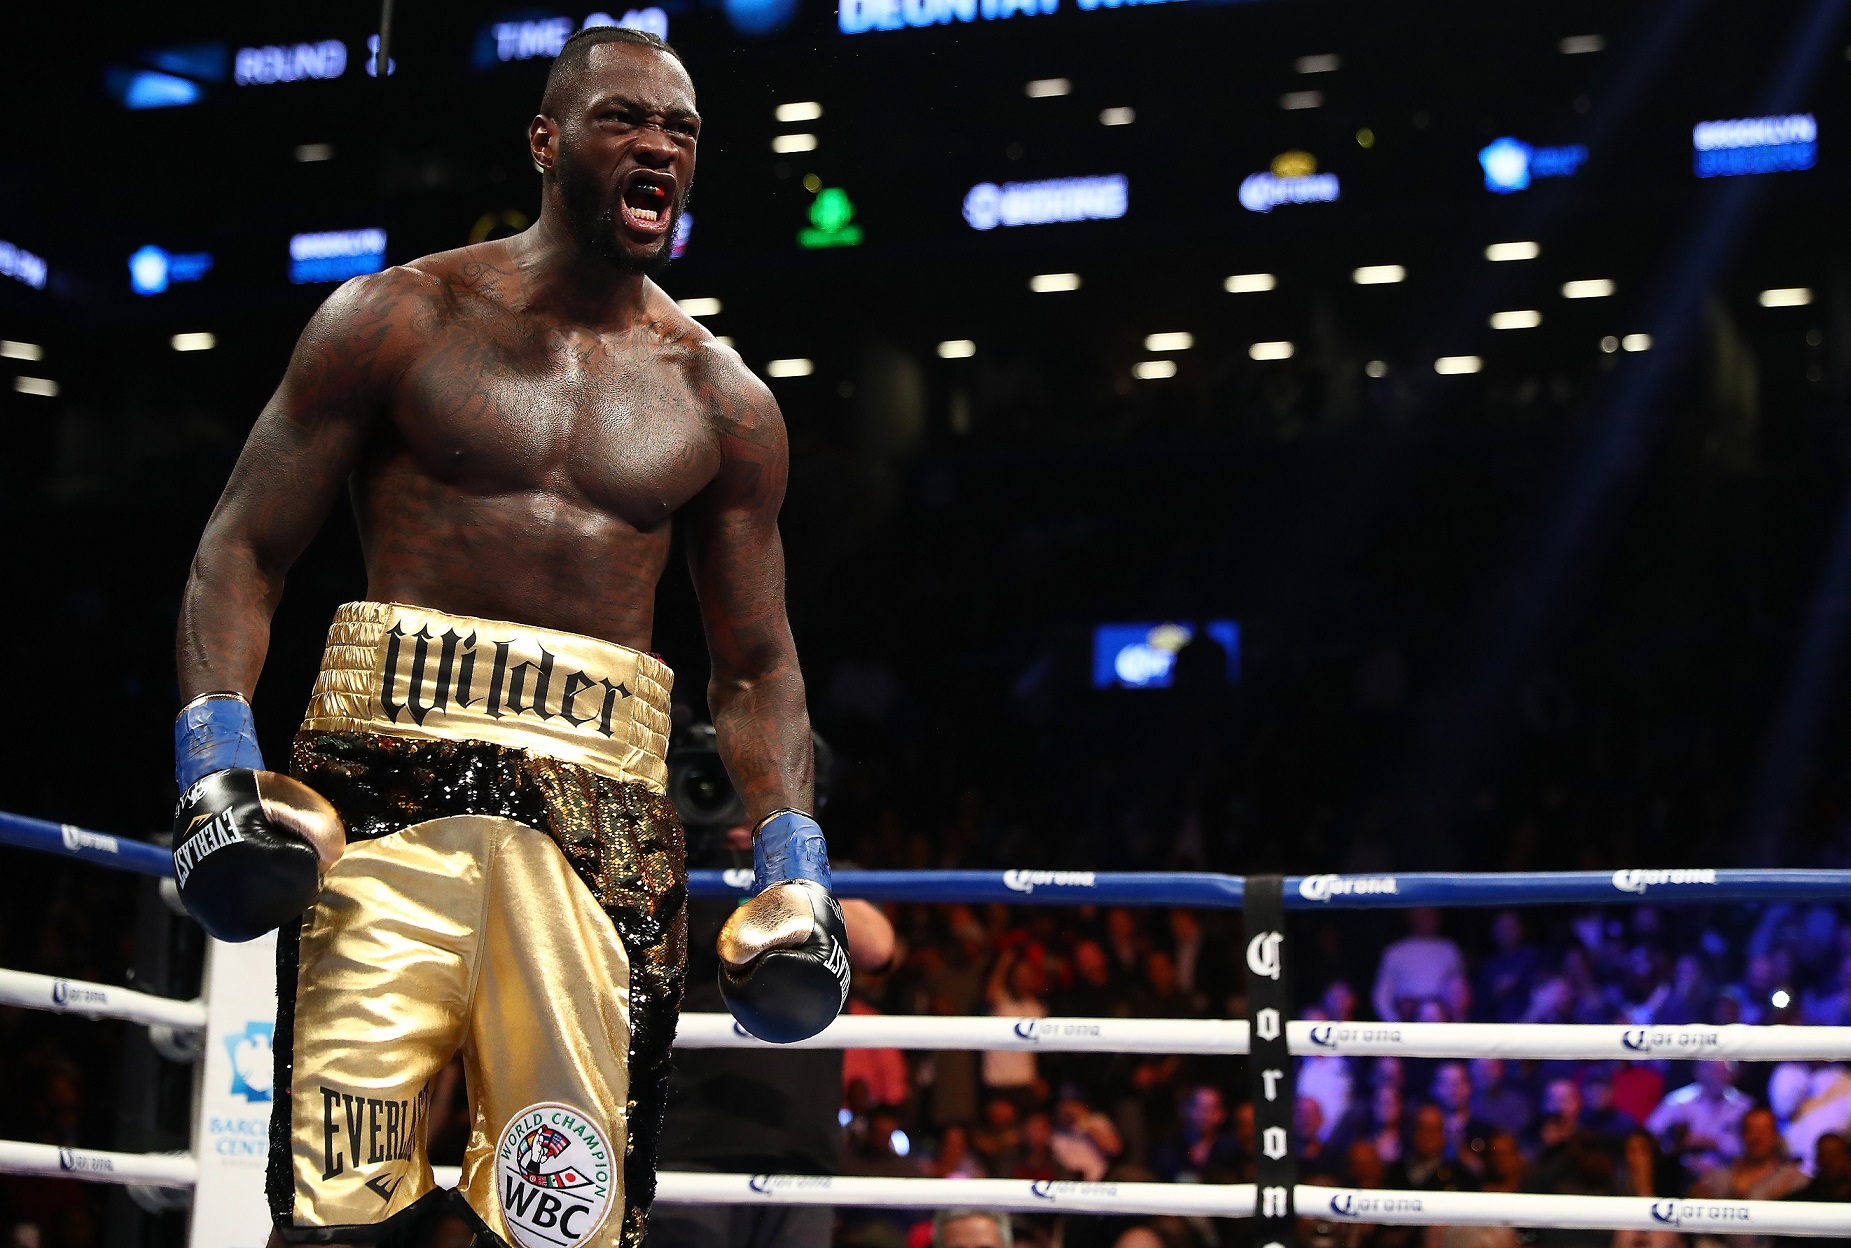 Deontay Wilder celebrates after knocking down Bermane Stiverne. Pic: Al Bello/Getty Images